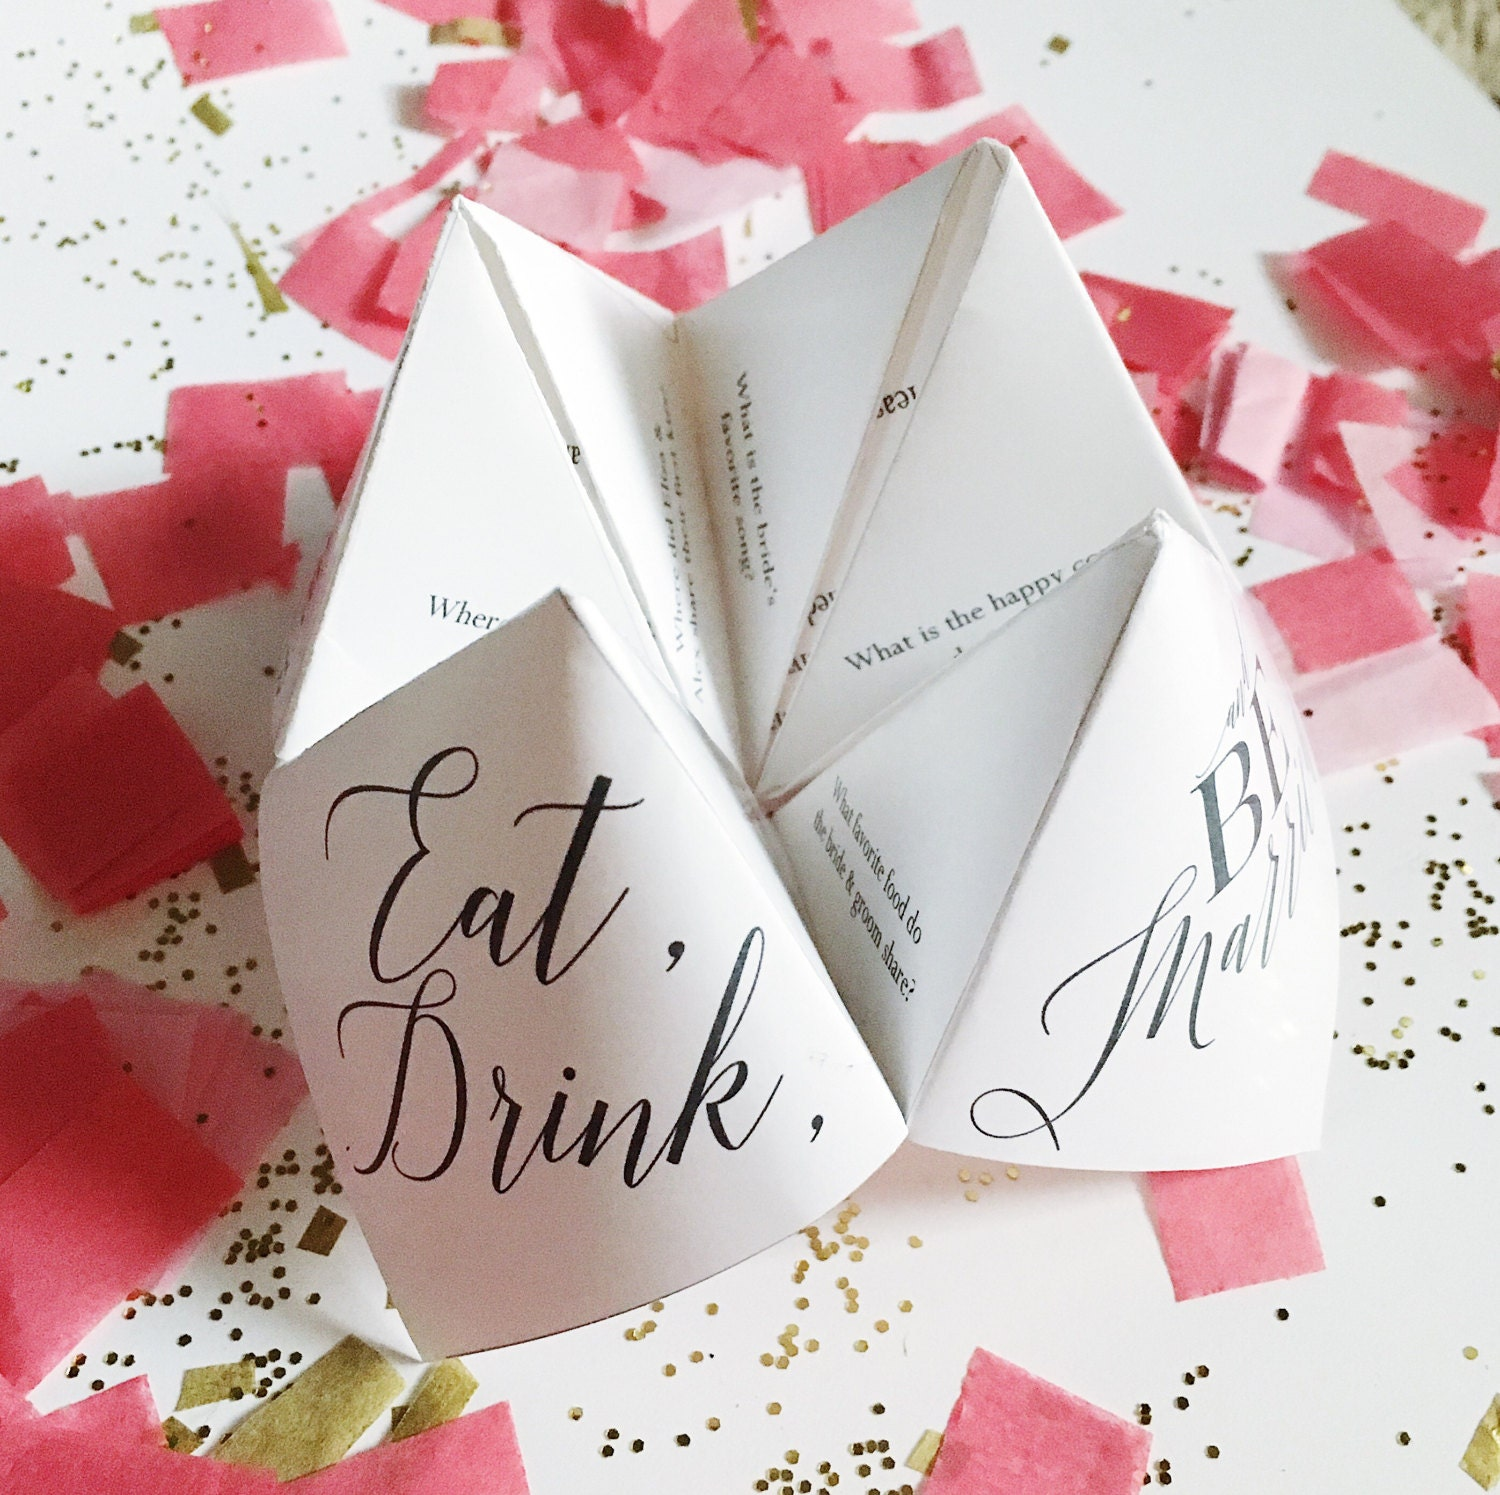 It's just a picture of Gratifying Printable Escort Cards